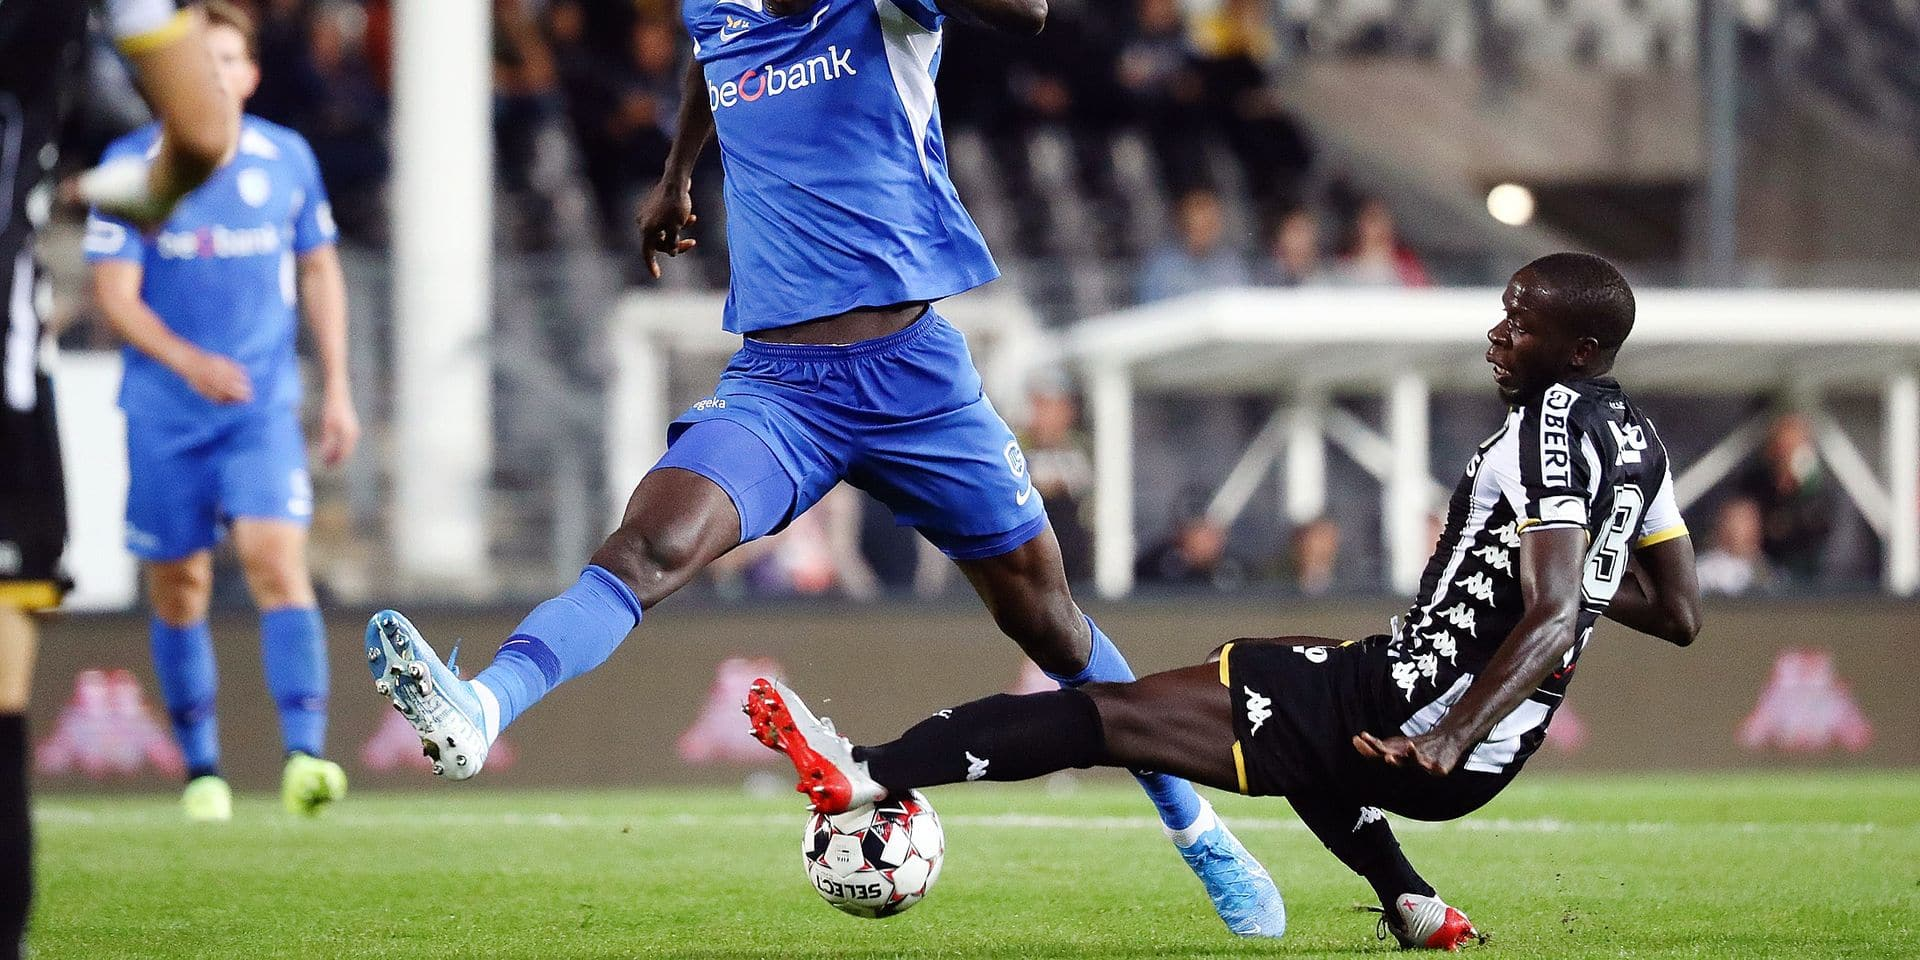 Genk's Paul Onuachu and Charleroi's Cristophe Diandy fight for the ball during a soccer match between Sporting Charleroi and Krc Genk, Friday 13 September 2019 in Charleroi, on the seventh day of the 'Jupiler Pro League' Belgian soccer championship season 2019-2020. BELGA PHOTO VIRGINIE LEFOUR